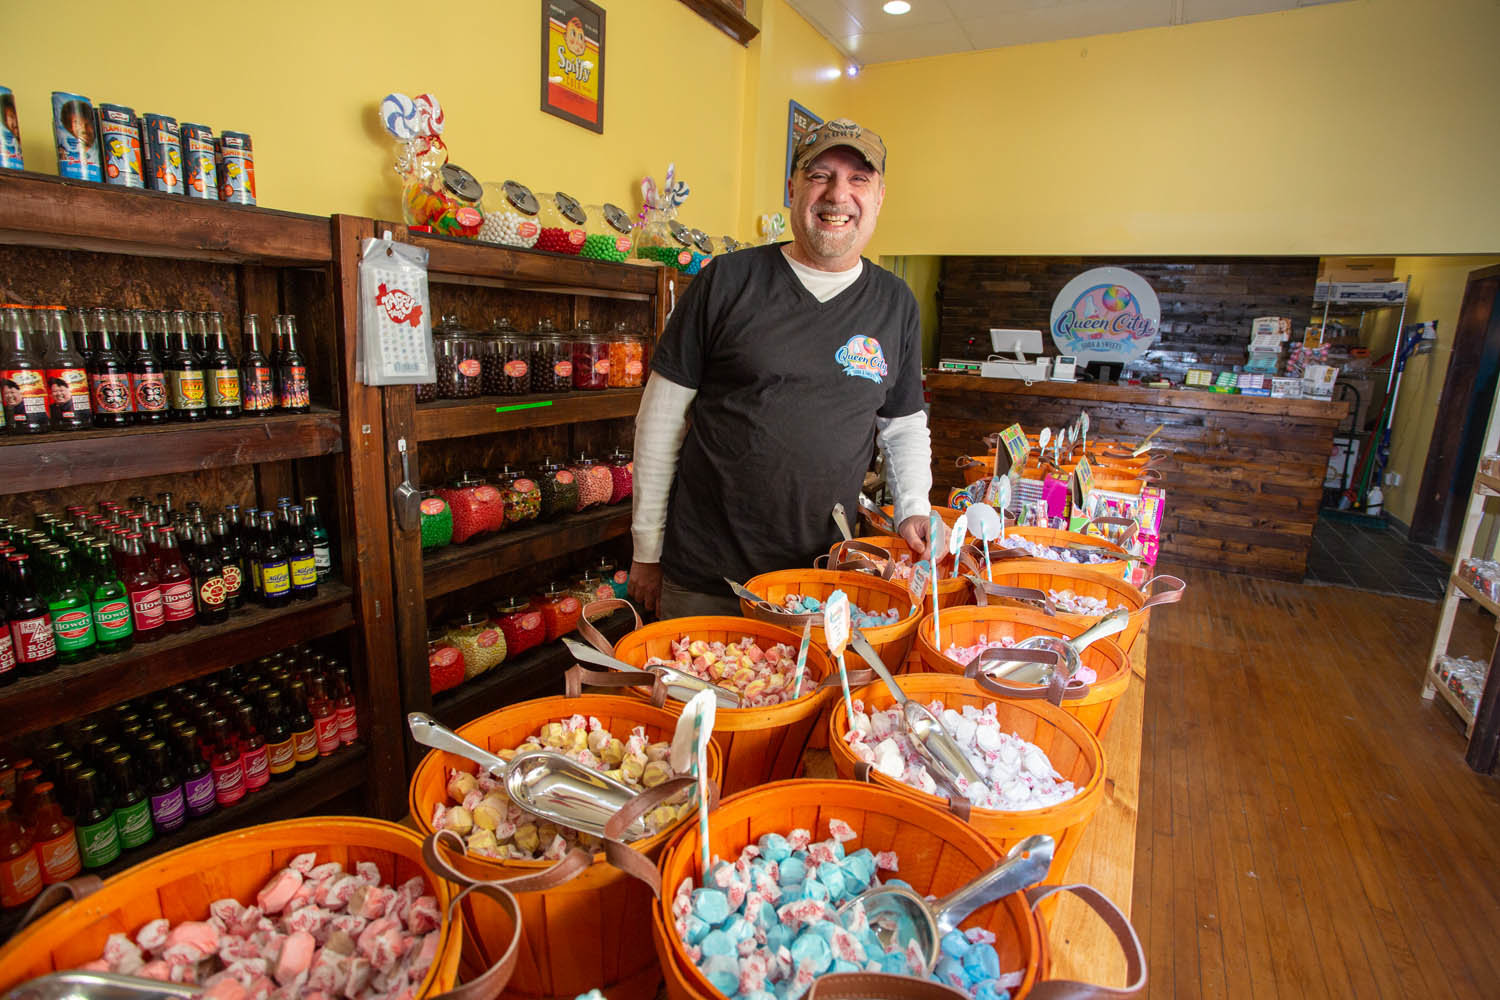 Robert Sands, Queen City Soda & Sweets